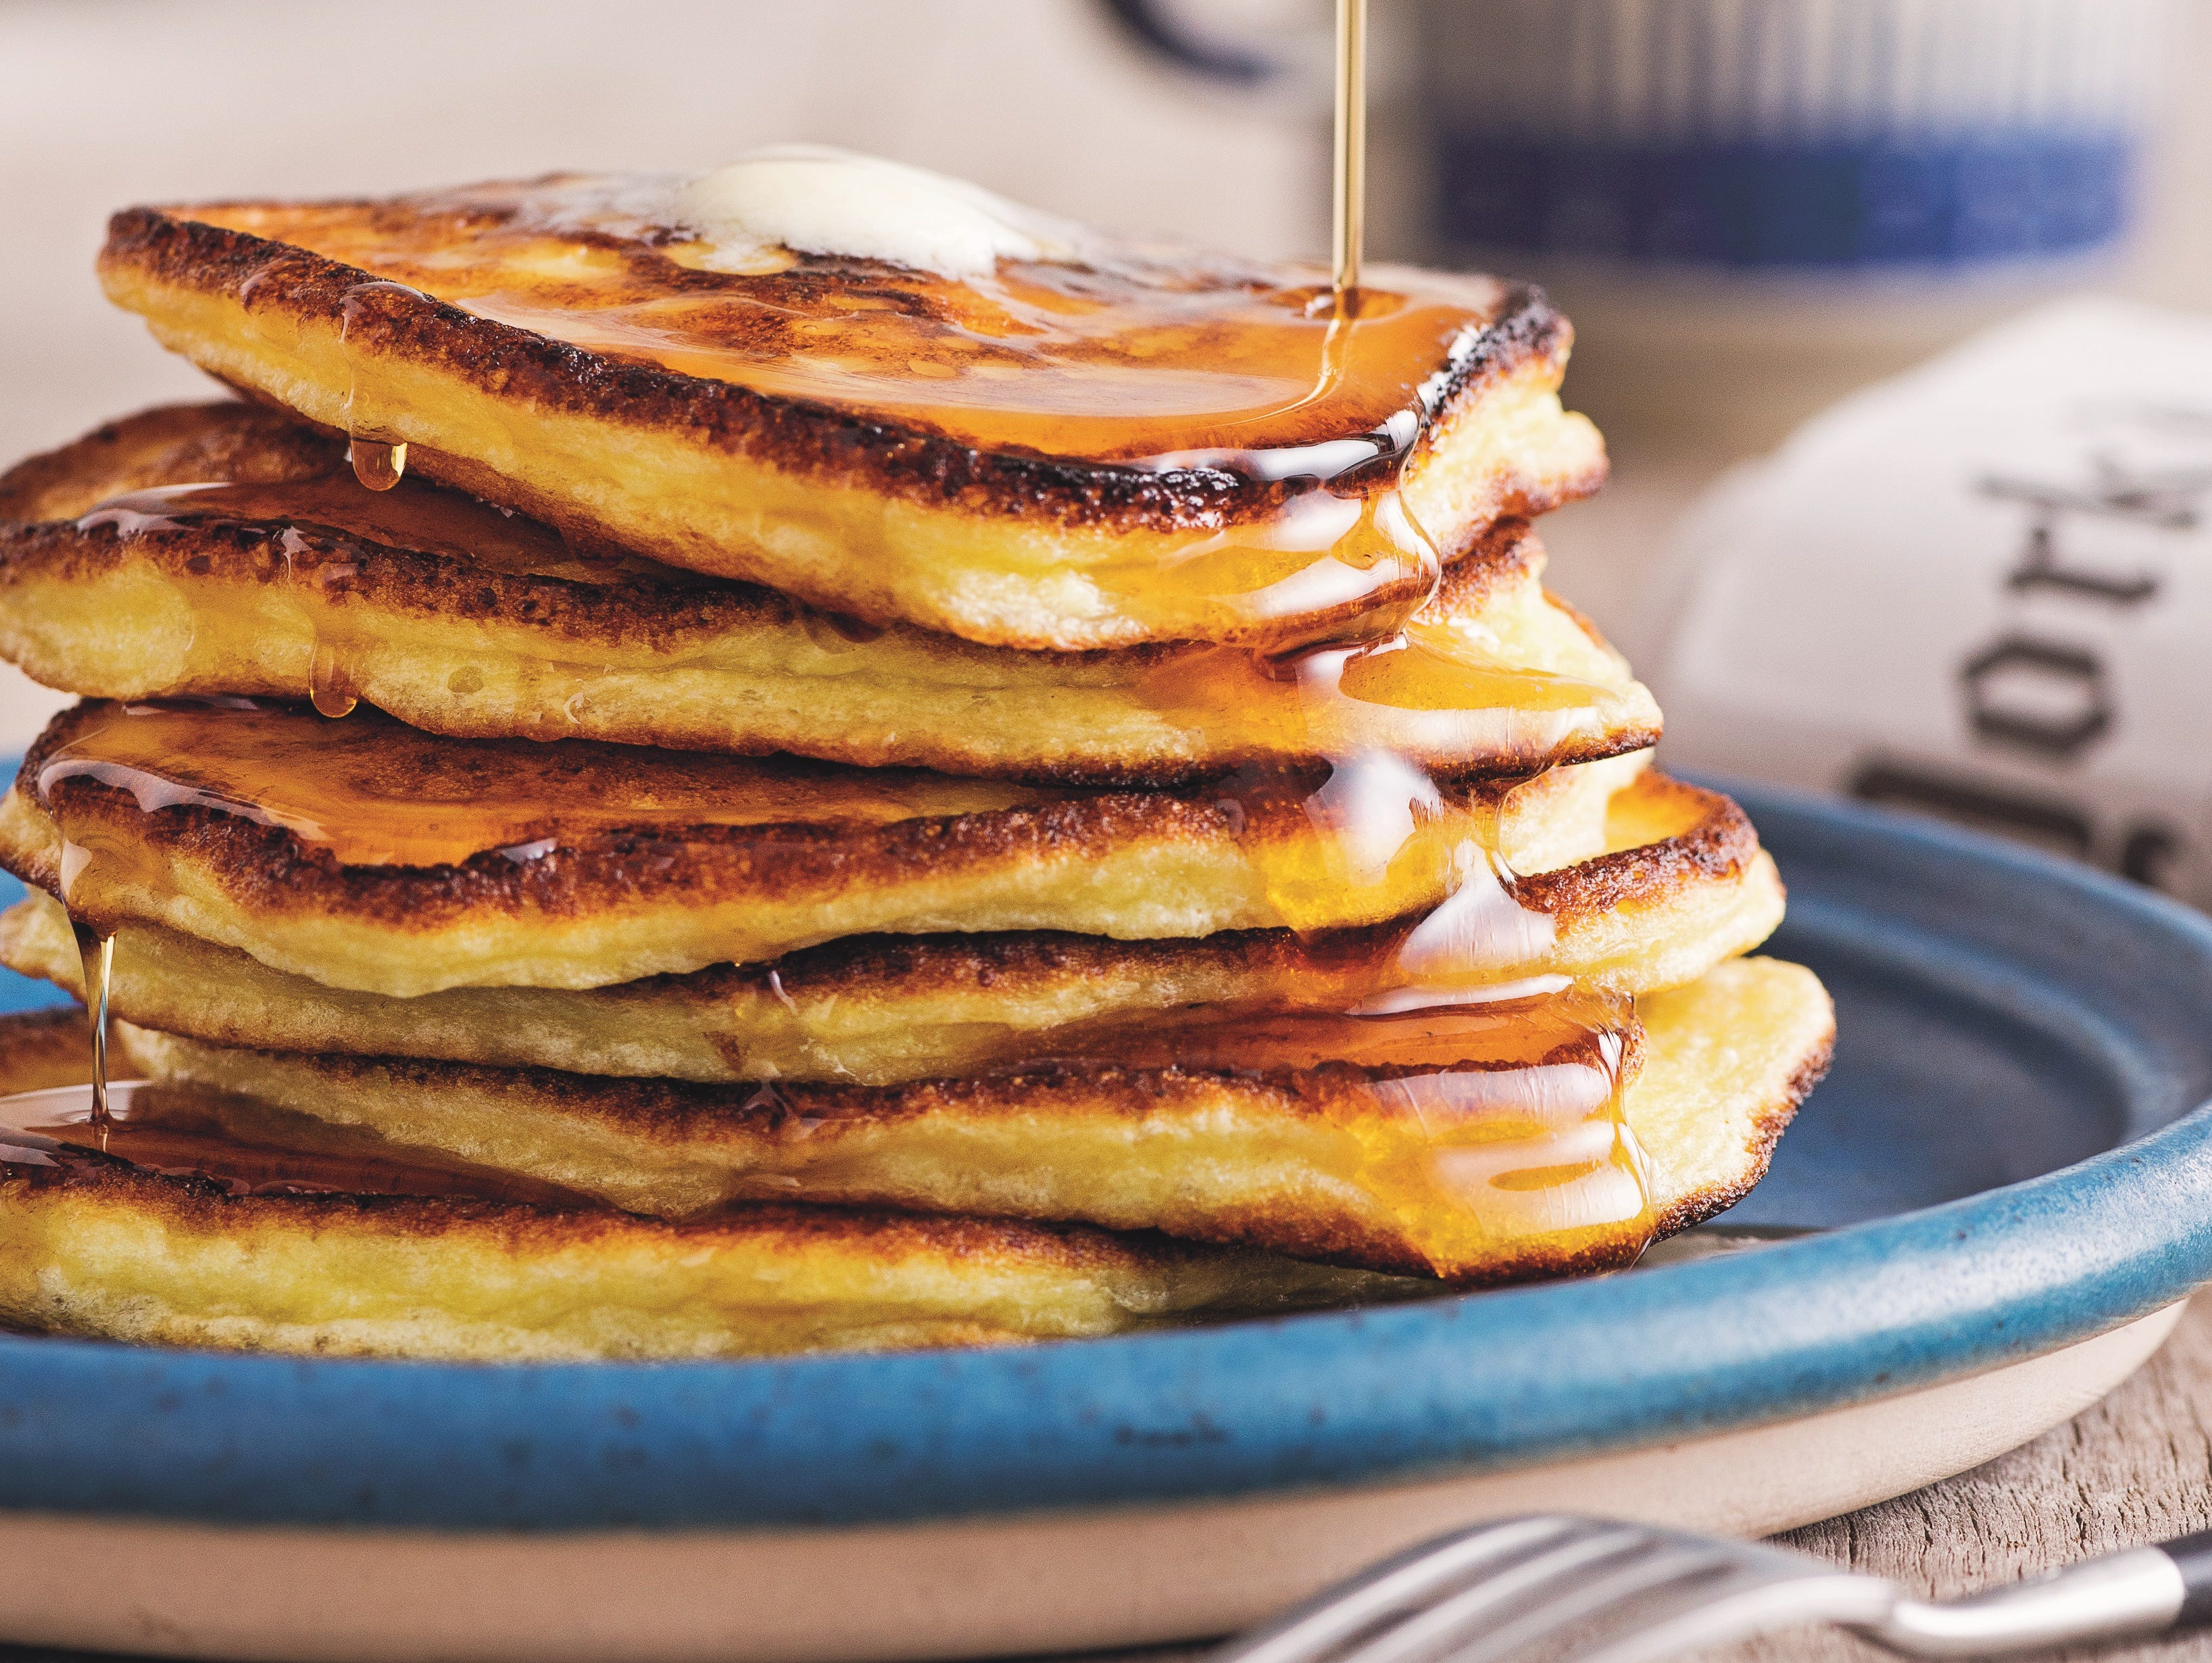 Start the school day off right with this delicious Lemon Ricotta Pancakes recipe.